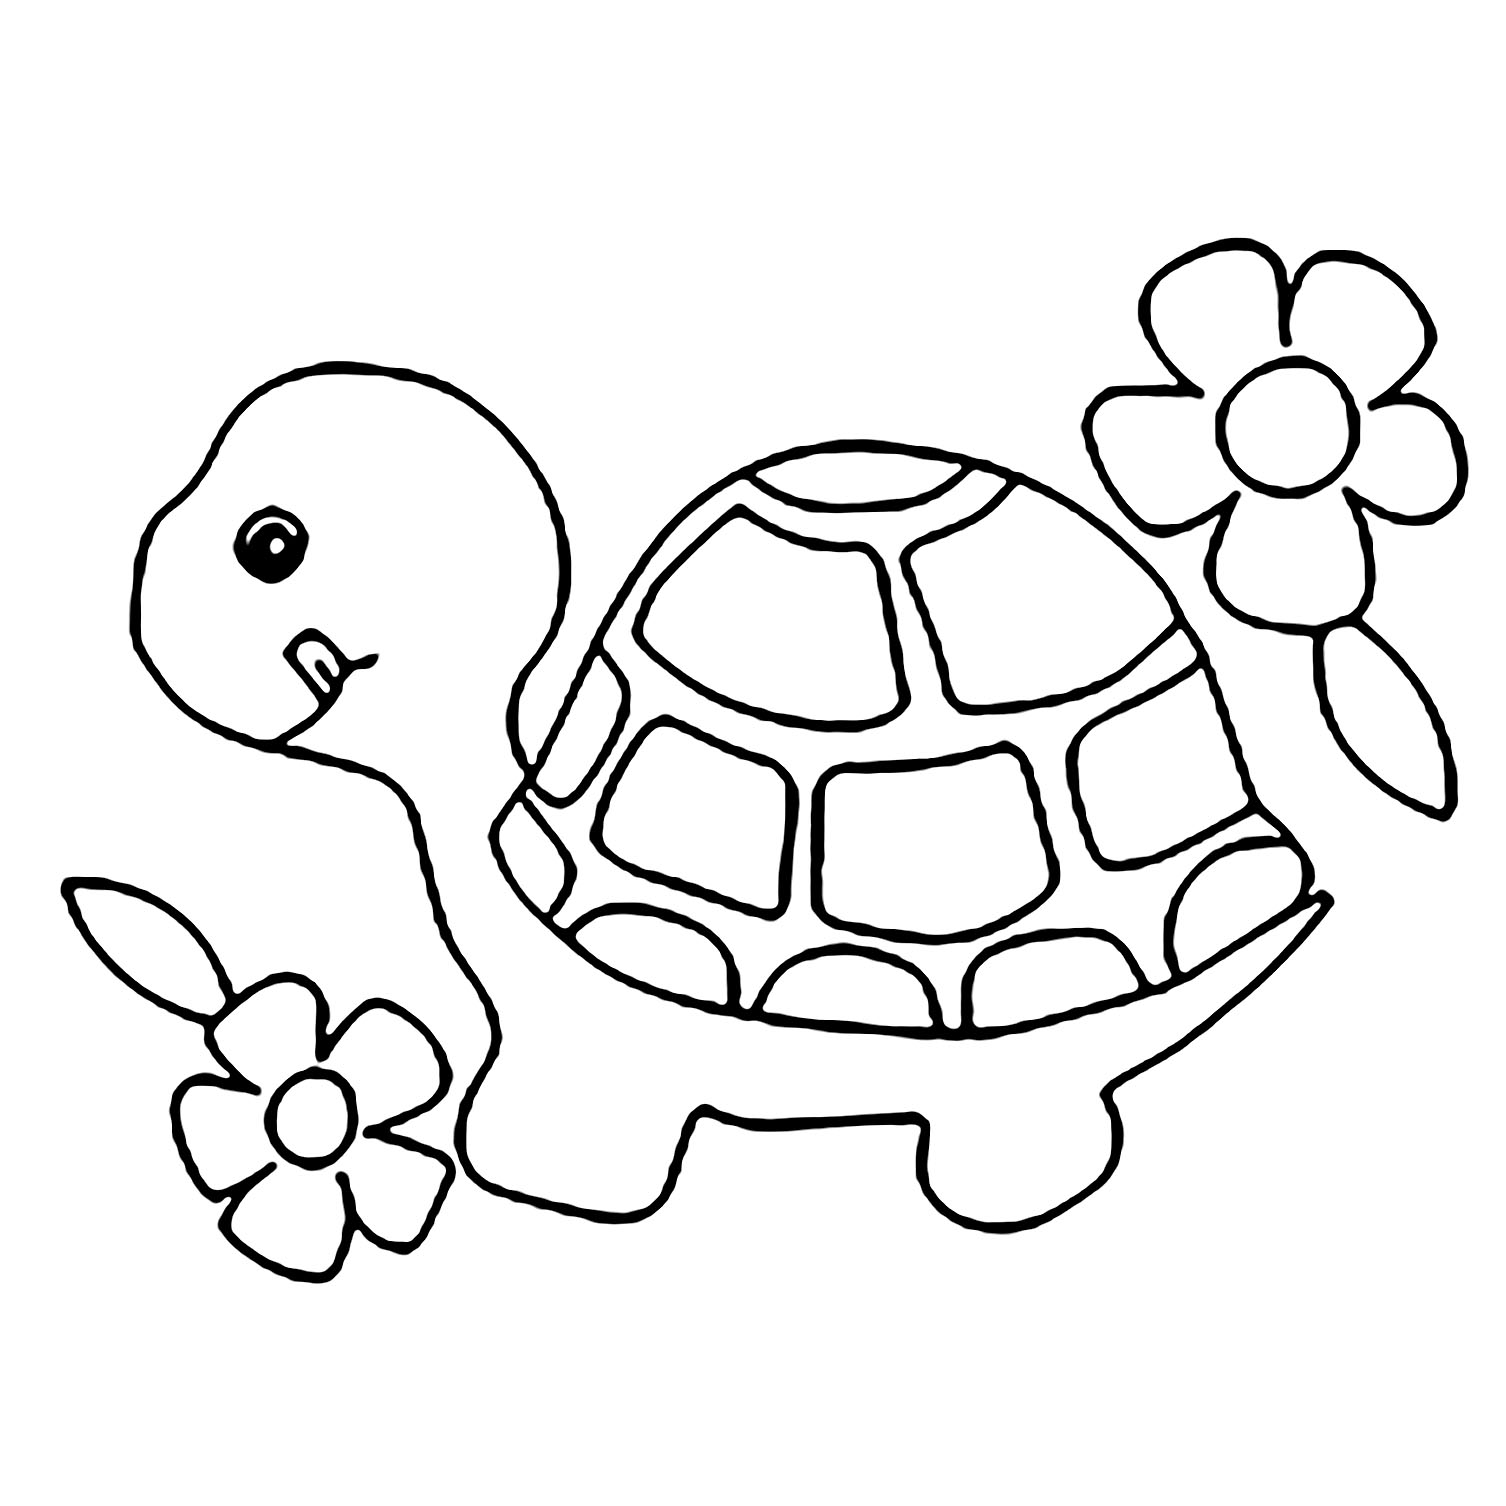 Turtles To Download For Free